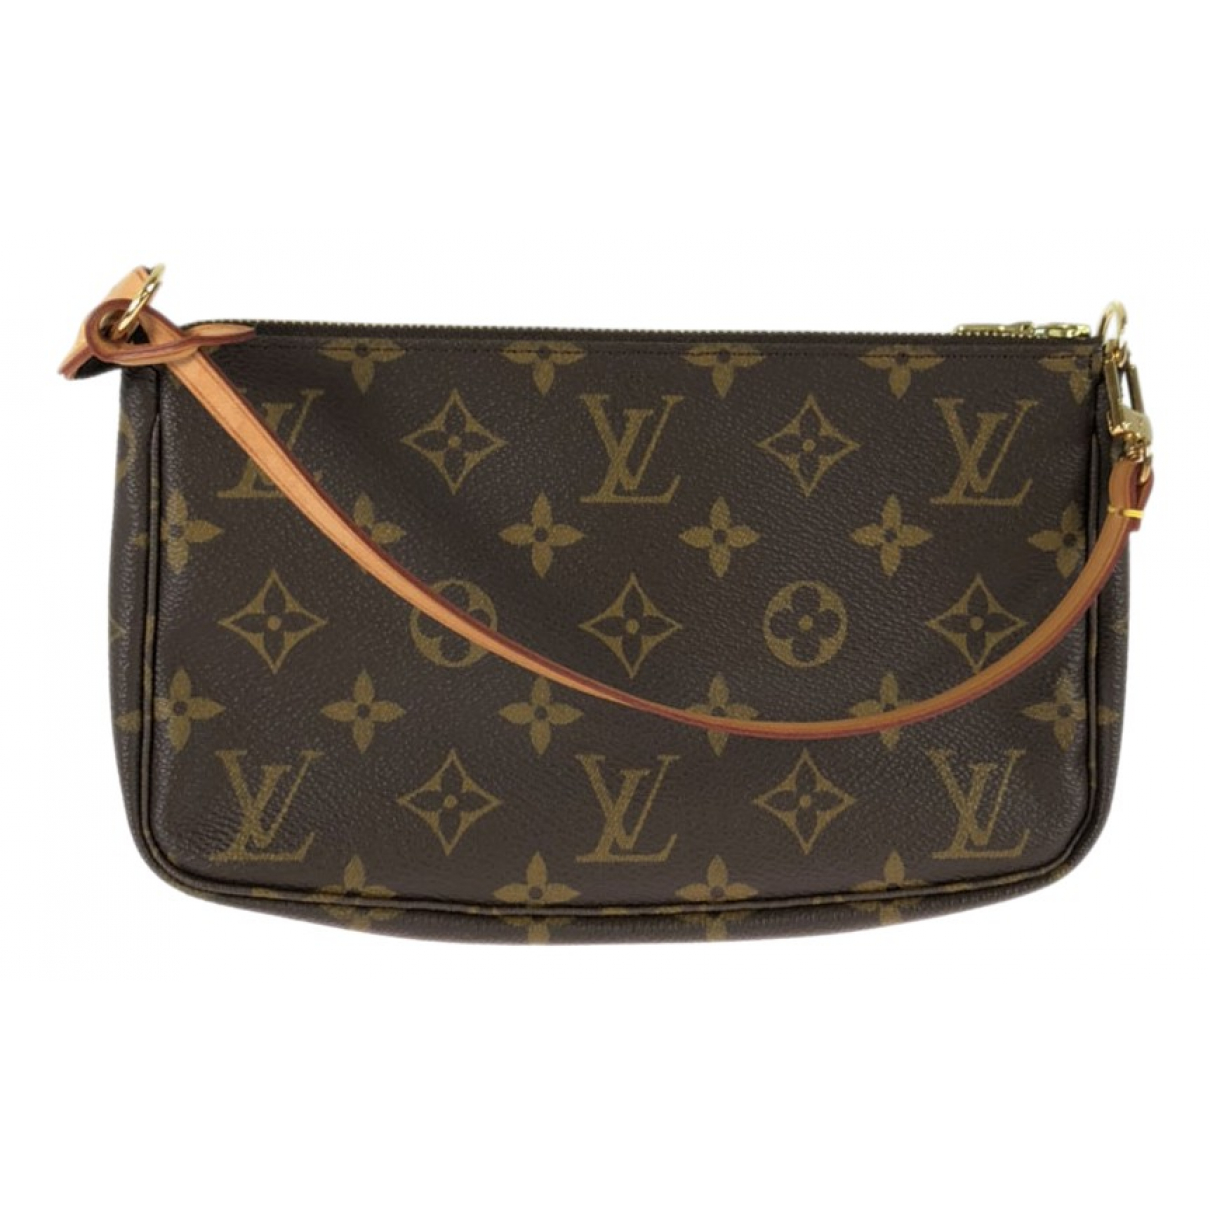 Louis Vuitton Pochette Accessoire Brown Cloth Clutch bag for Women N